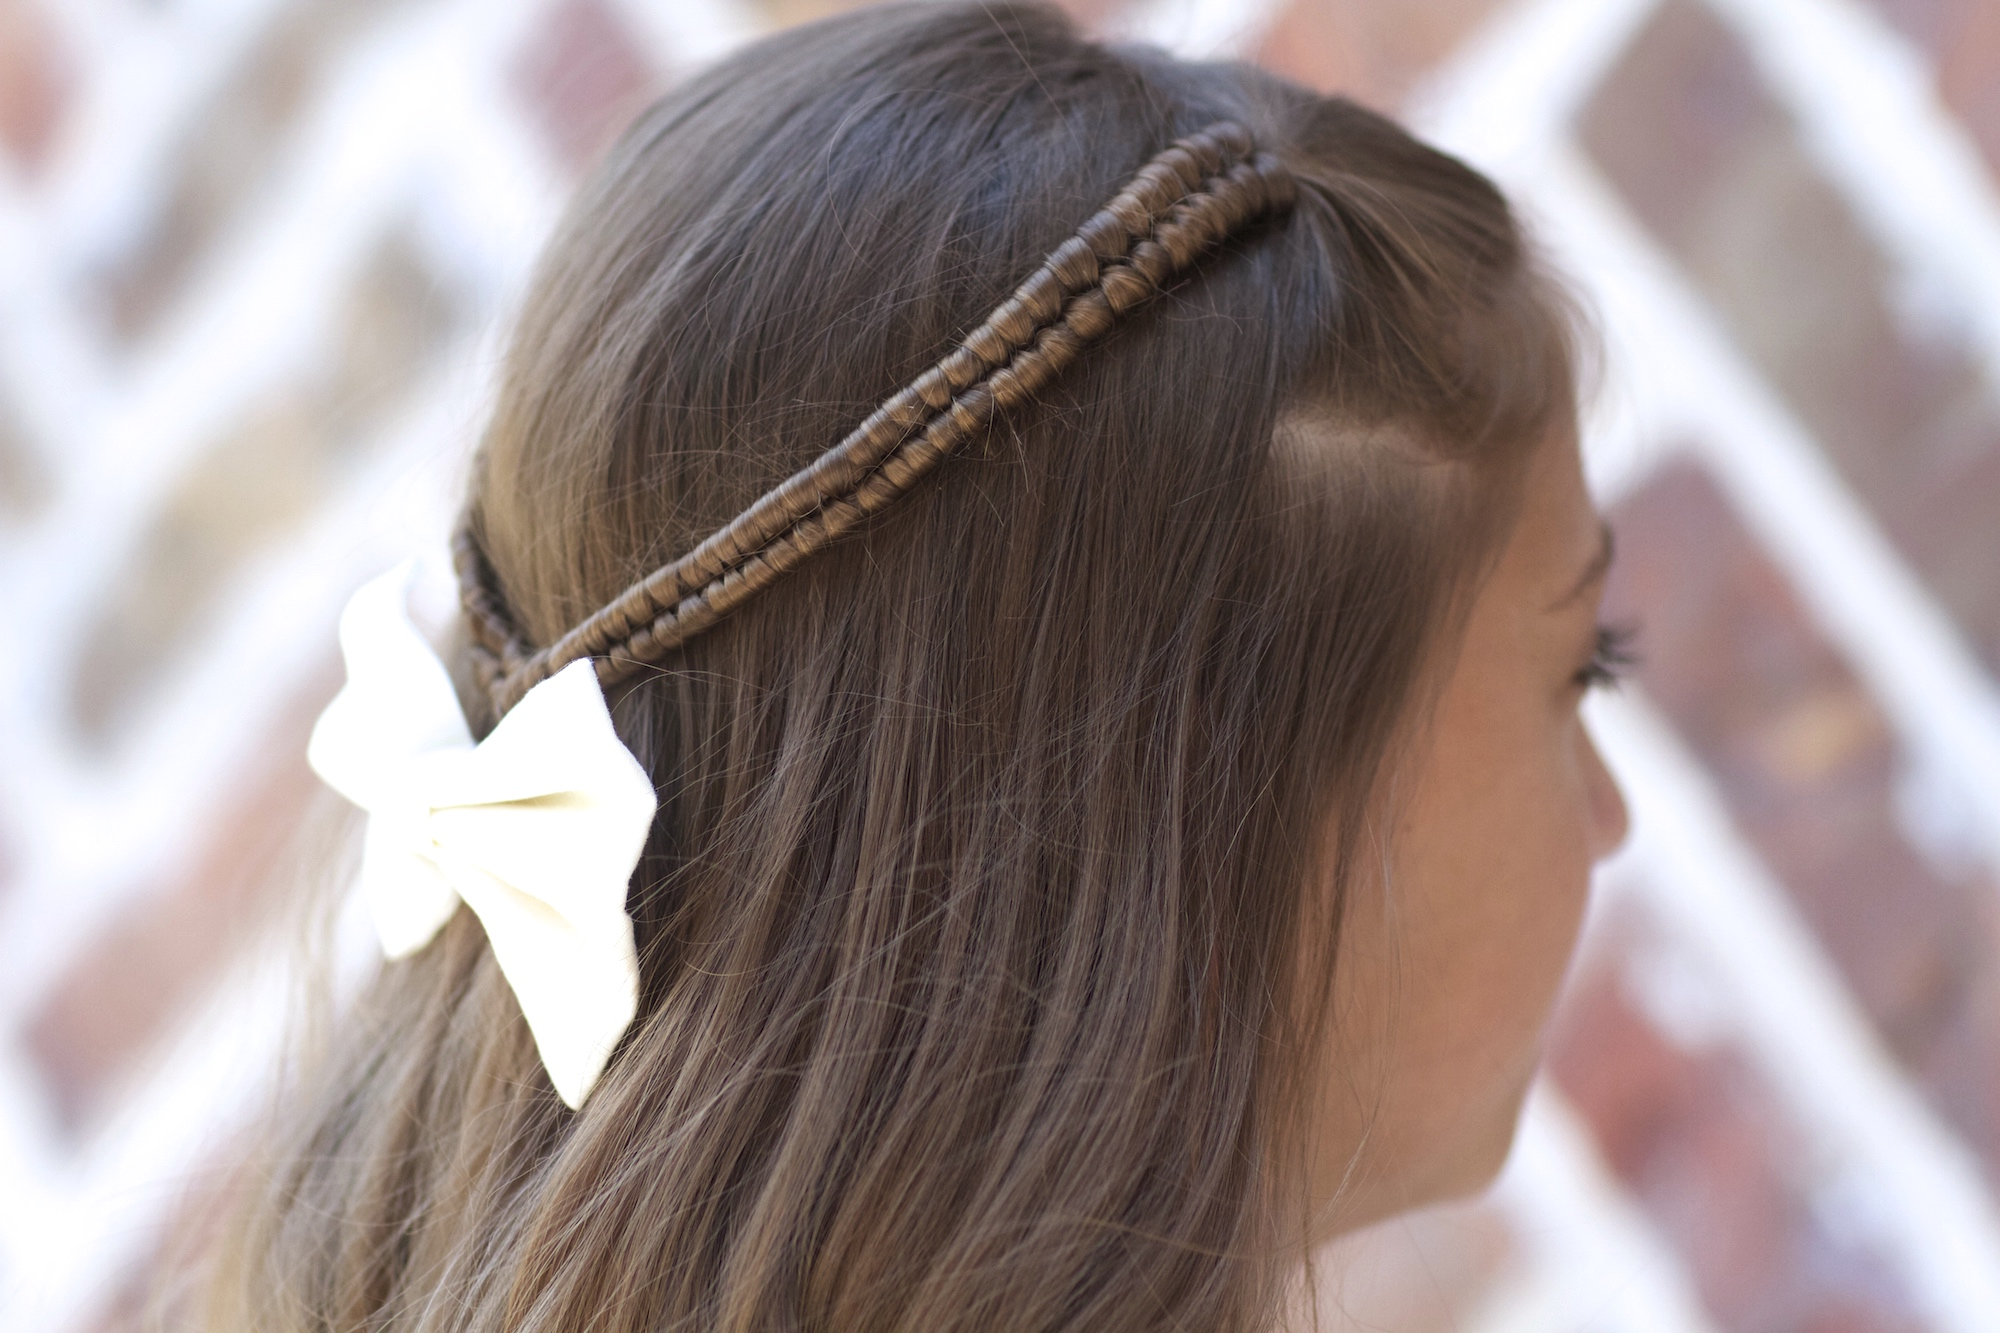 infinity hair style infinity braid tieback back to school hairstyles 5360 | MG 7774